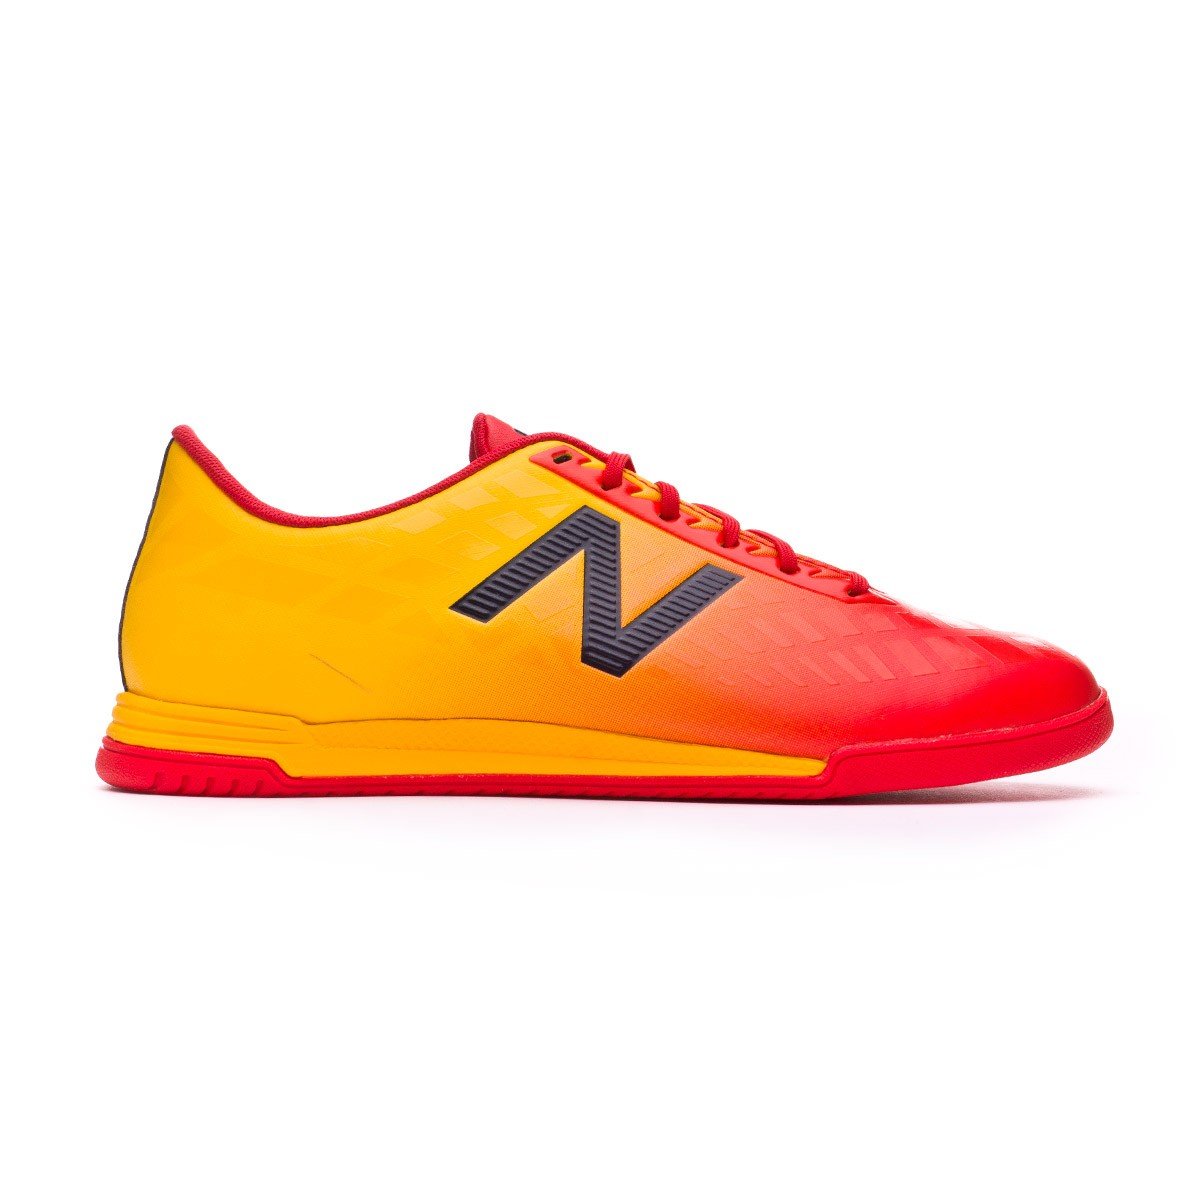 2c6440eda1e Futsal Boot New Balance Kids Furon 4.0 Dispatch Indoor Flame - Football  store Fútbol Emotion